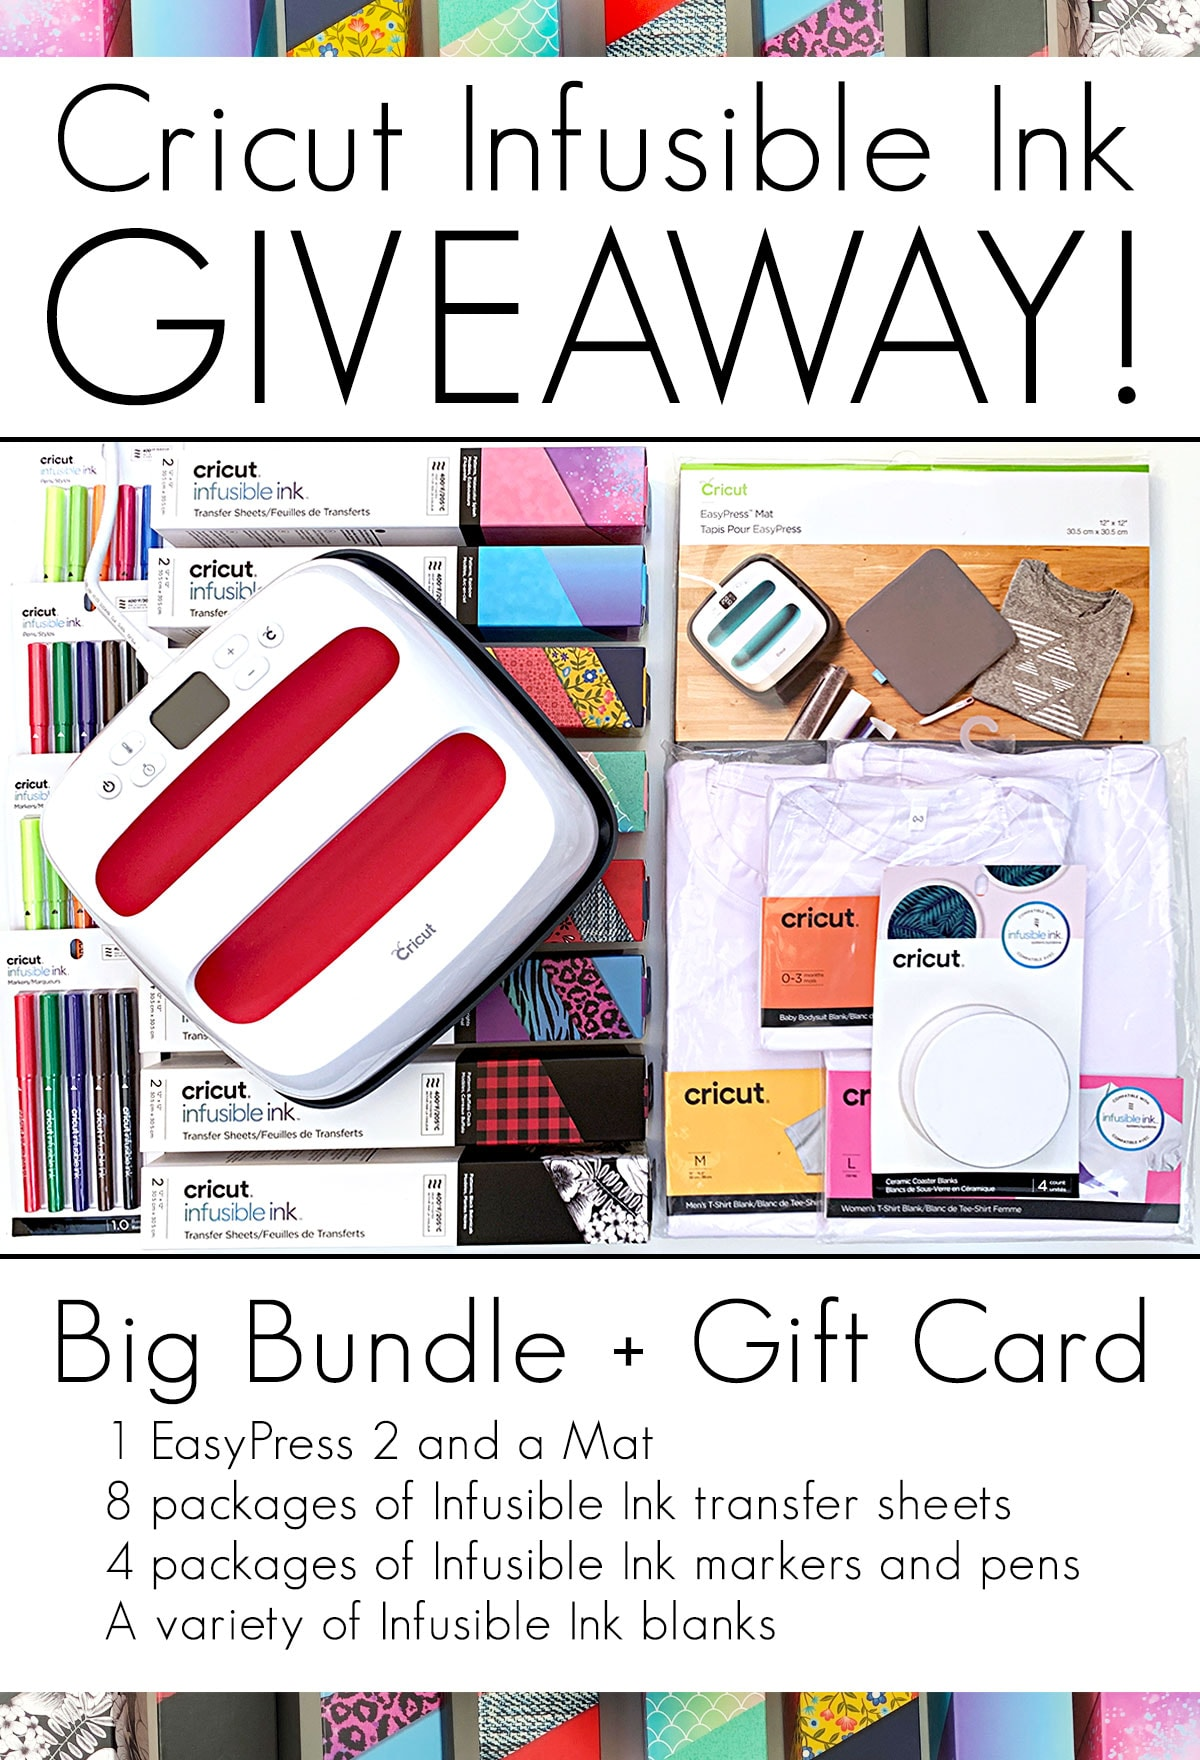 Cricut Infusible Ink Giveaway